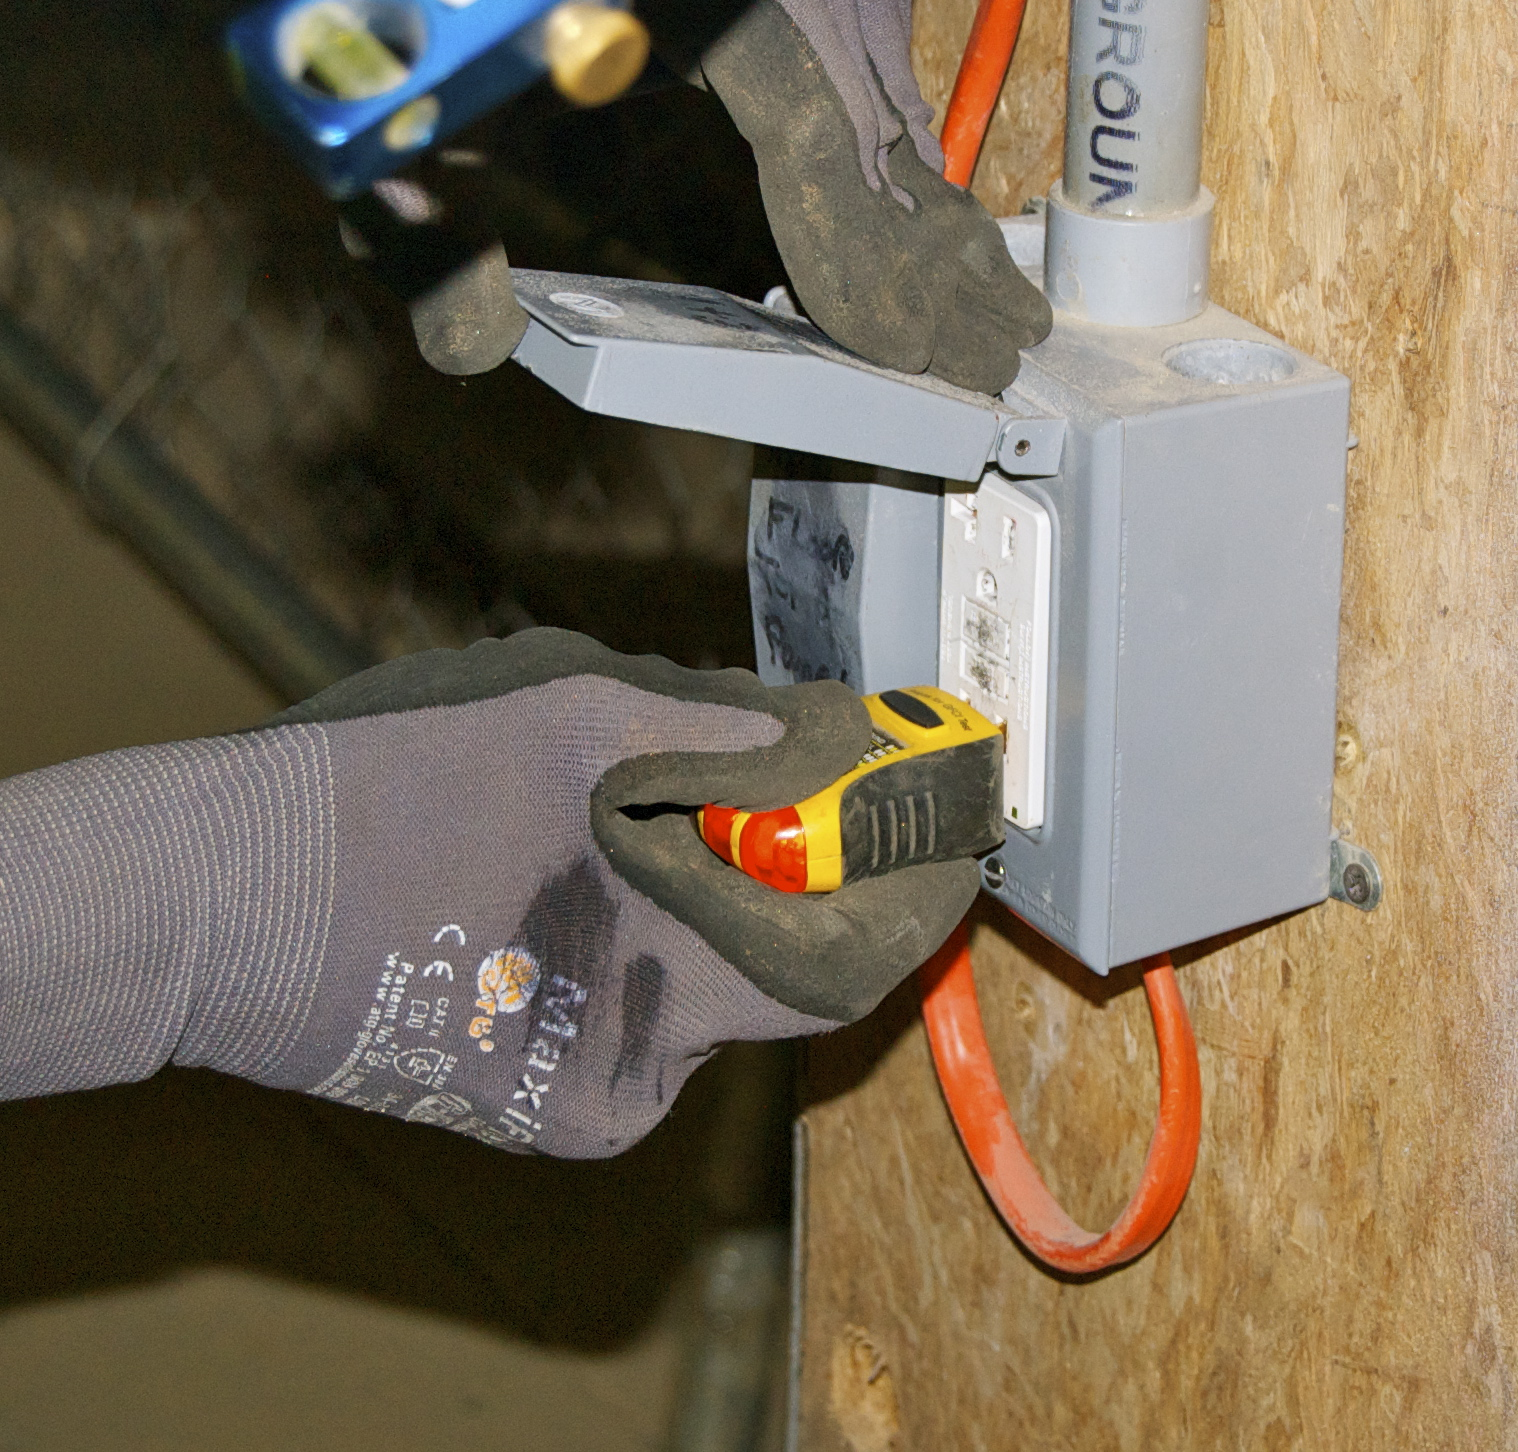 Elcosh I002665 How Gfcis Work Content From Electrical Construction Checking Outlet With Gfci Tester